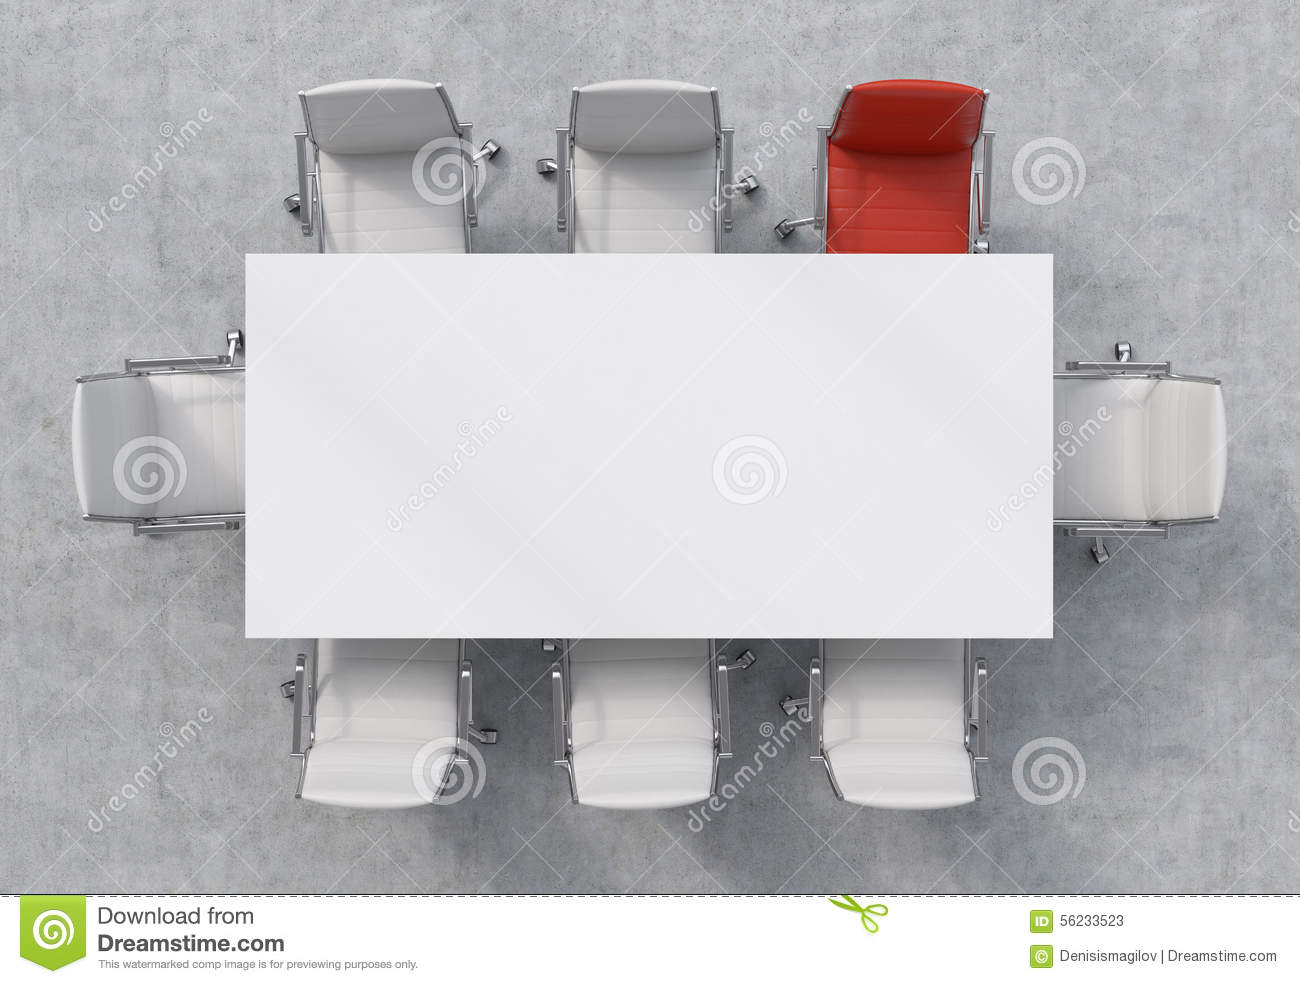 Top View Of A Conference Room A White Rectangular Table  : top view conference room white rectangular table eight chairs around one them red office interior d renderin 56233523 from www.dreamstime.com size 1300 x 984 jpeg 105kB